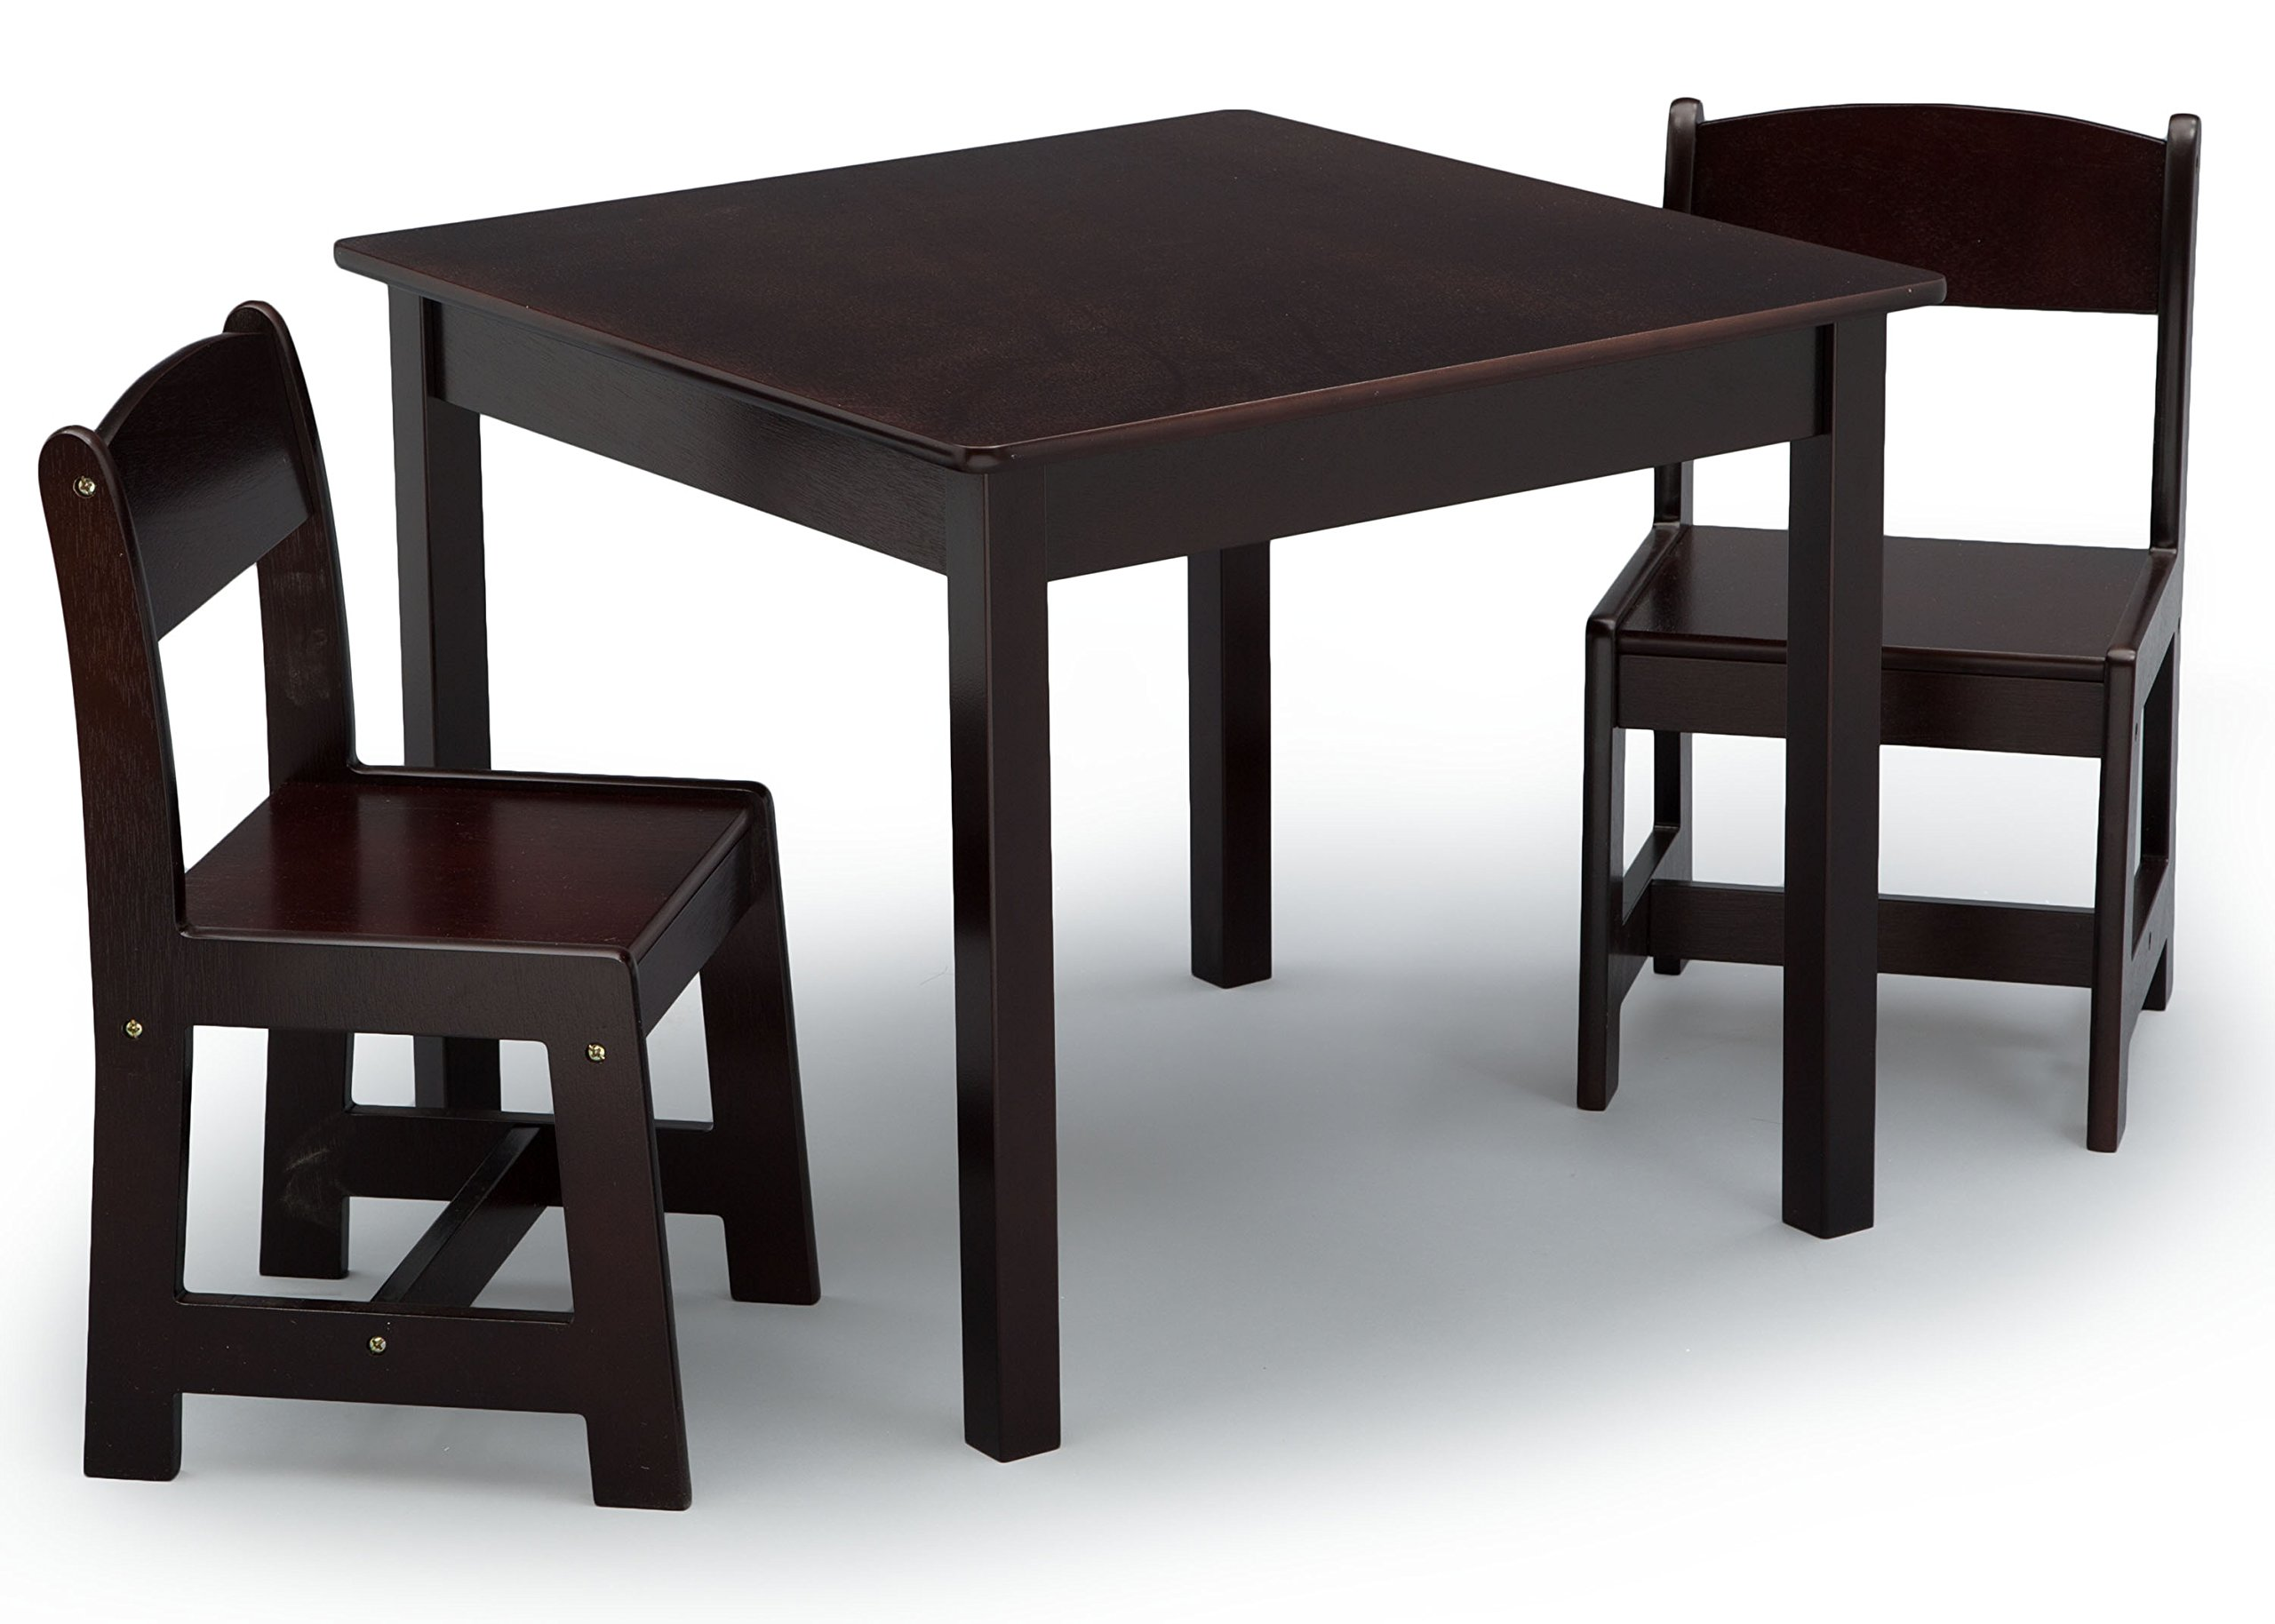 Delta Children MySize Table & 2 Chairs Set, Dark Chocolate